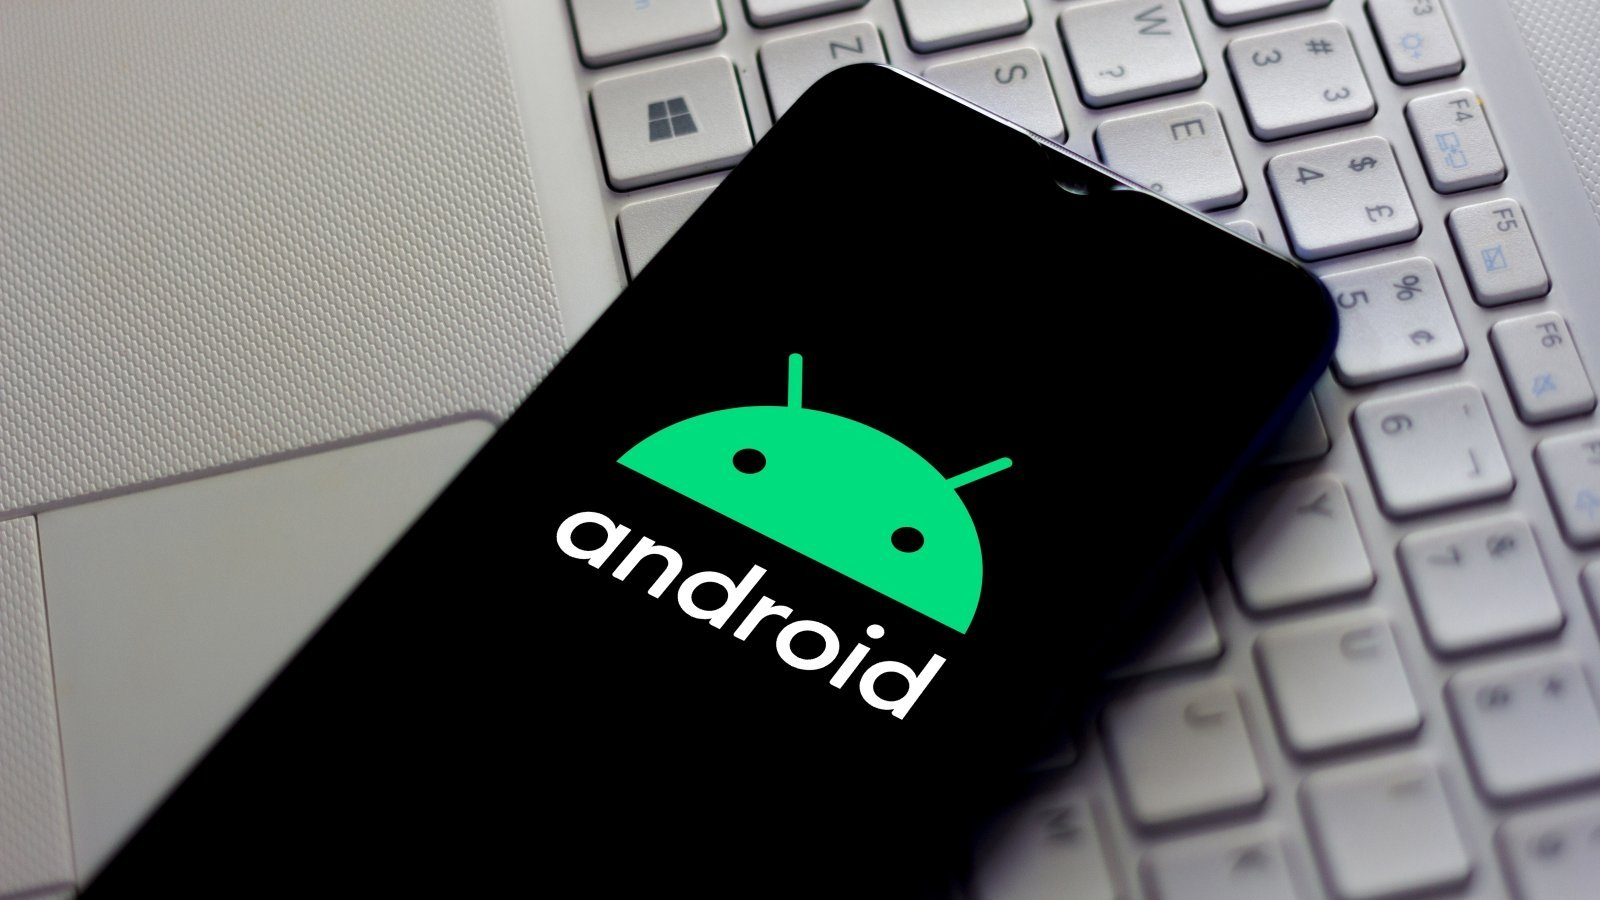 These Android Apps Are Most Vulnerable to Hacking